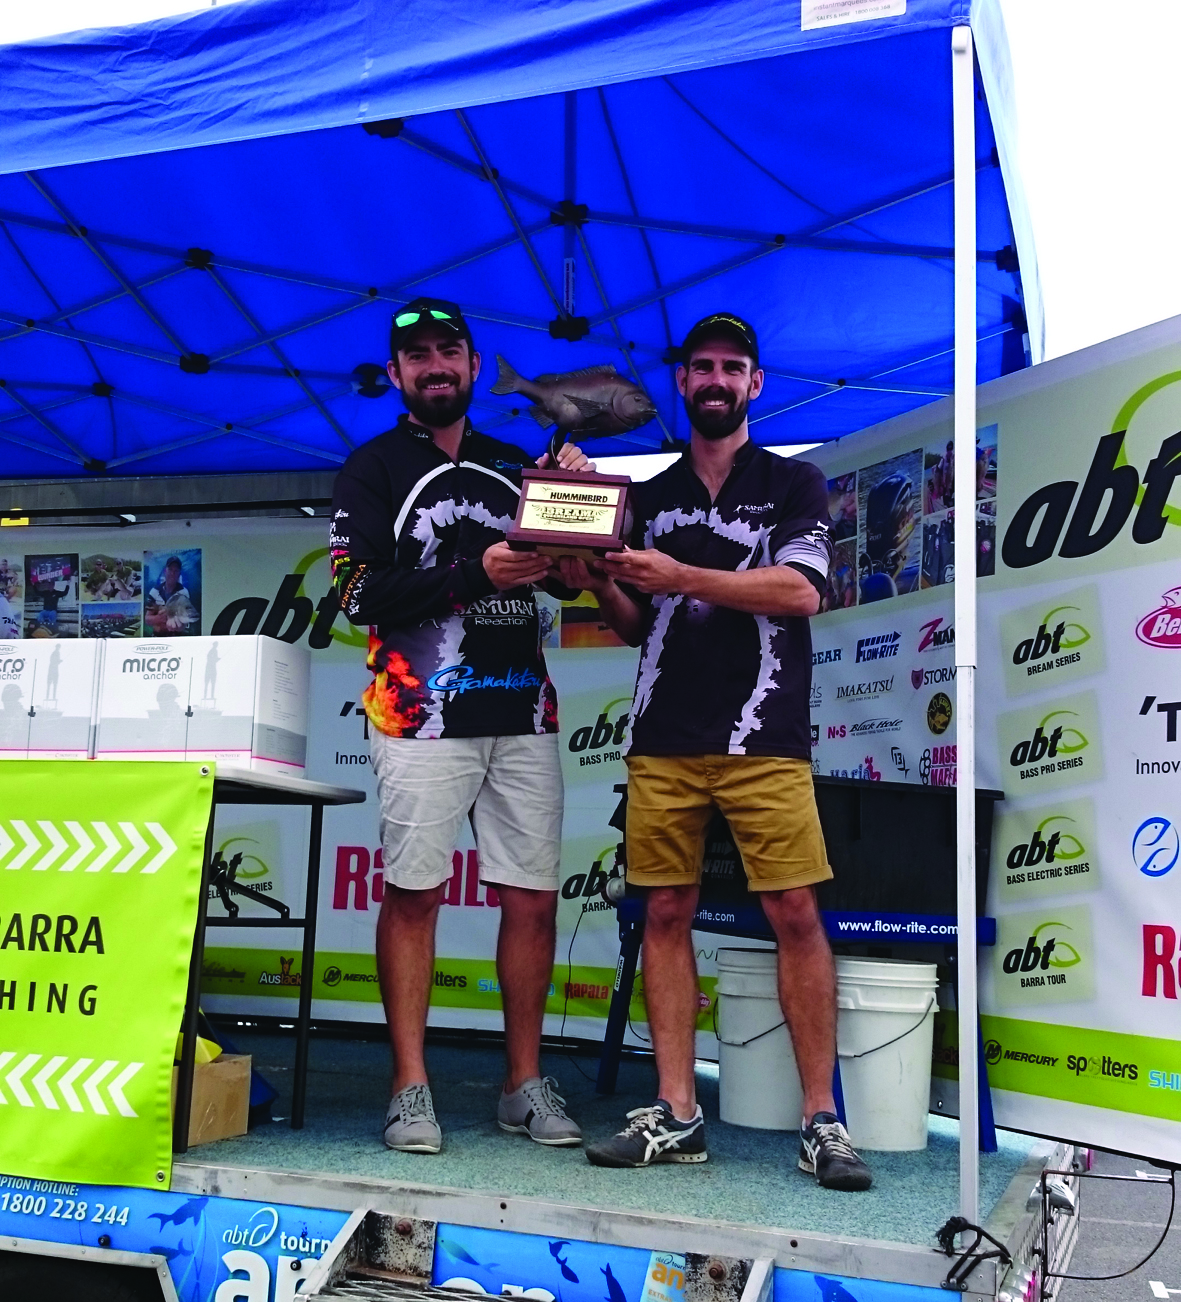 Queensland Bream Open winners for 2015 Tristan Taylor and Dave 'hypothetically' McKenzie.